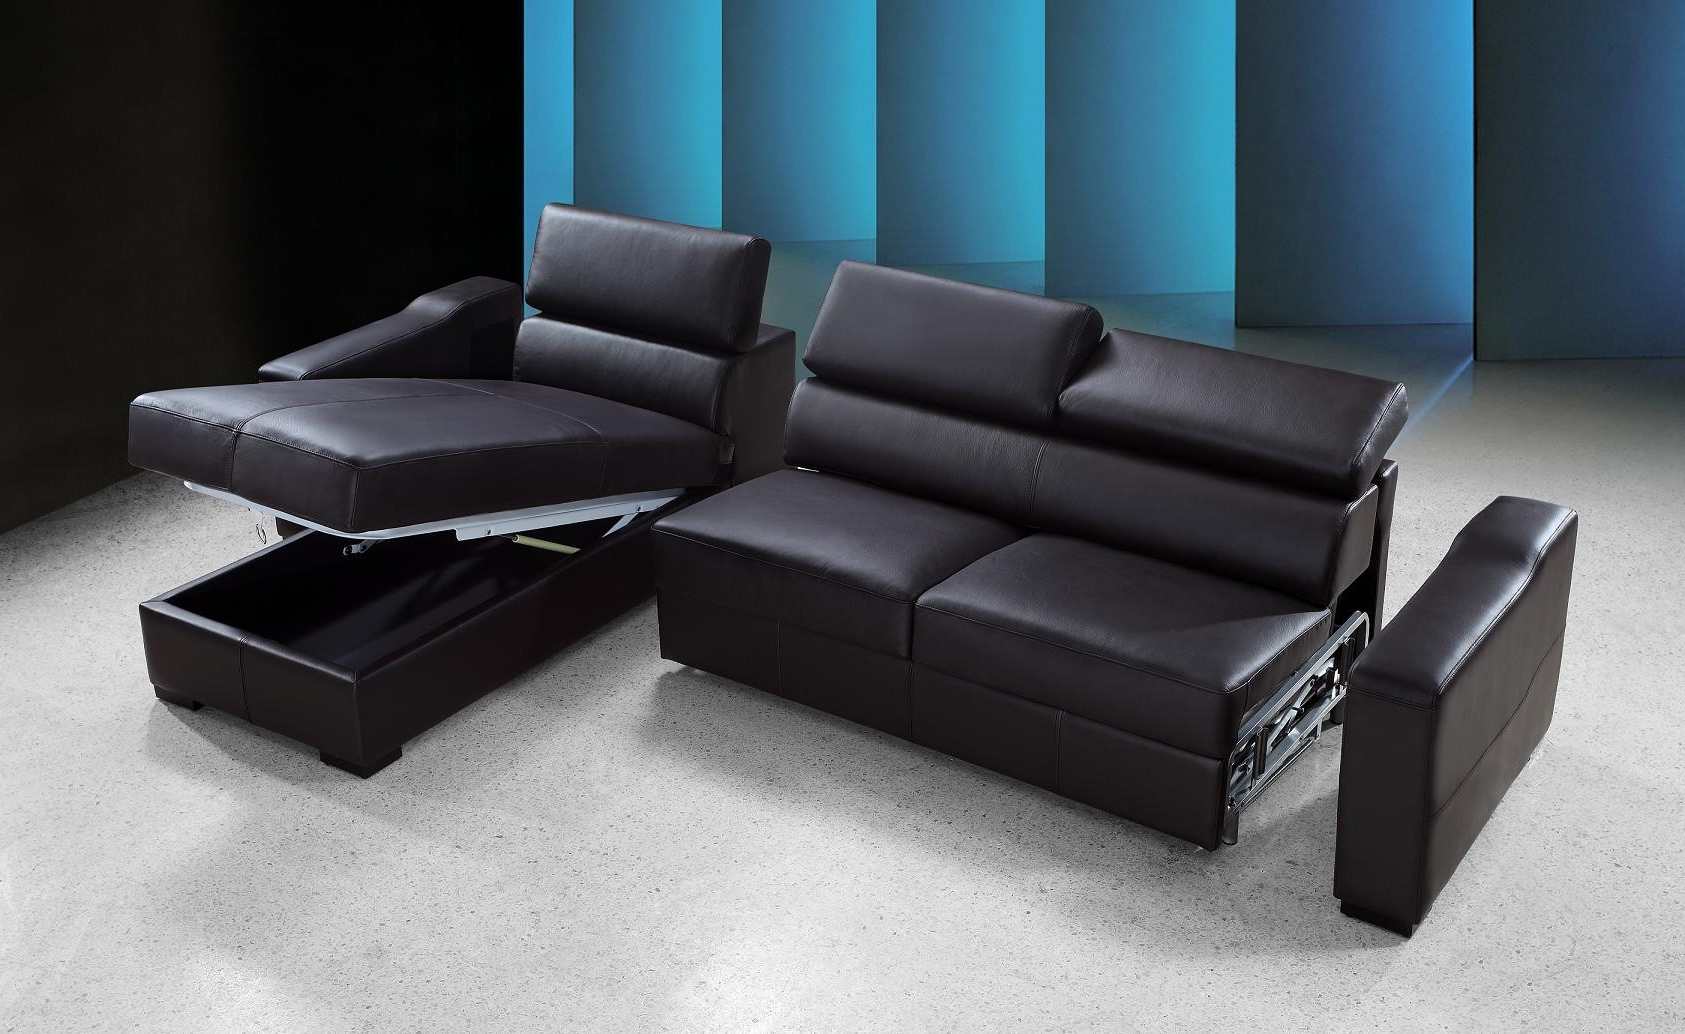 Sectional Sofas With Storage Throughout Recent Reversible Espresso Leather Sectional Sofa Bed W/ Storage (View 14 of 15)